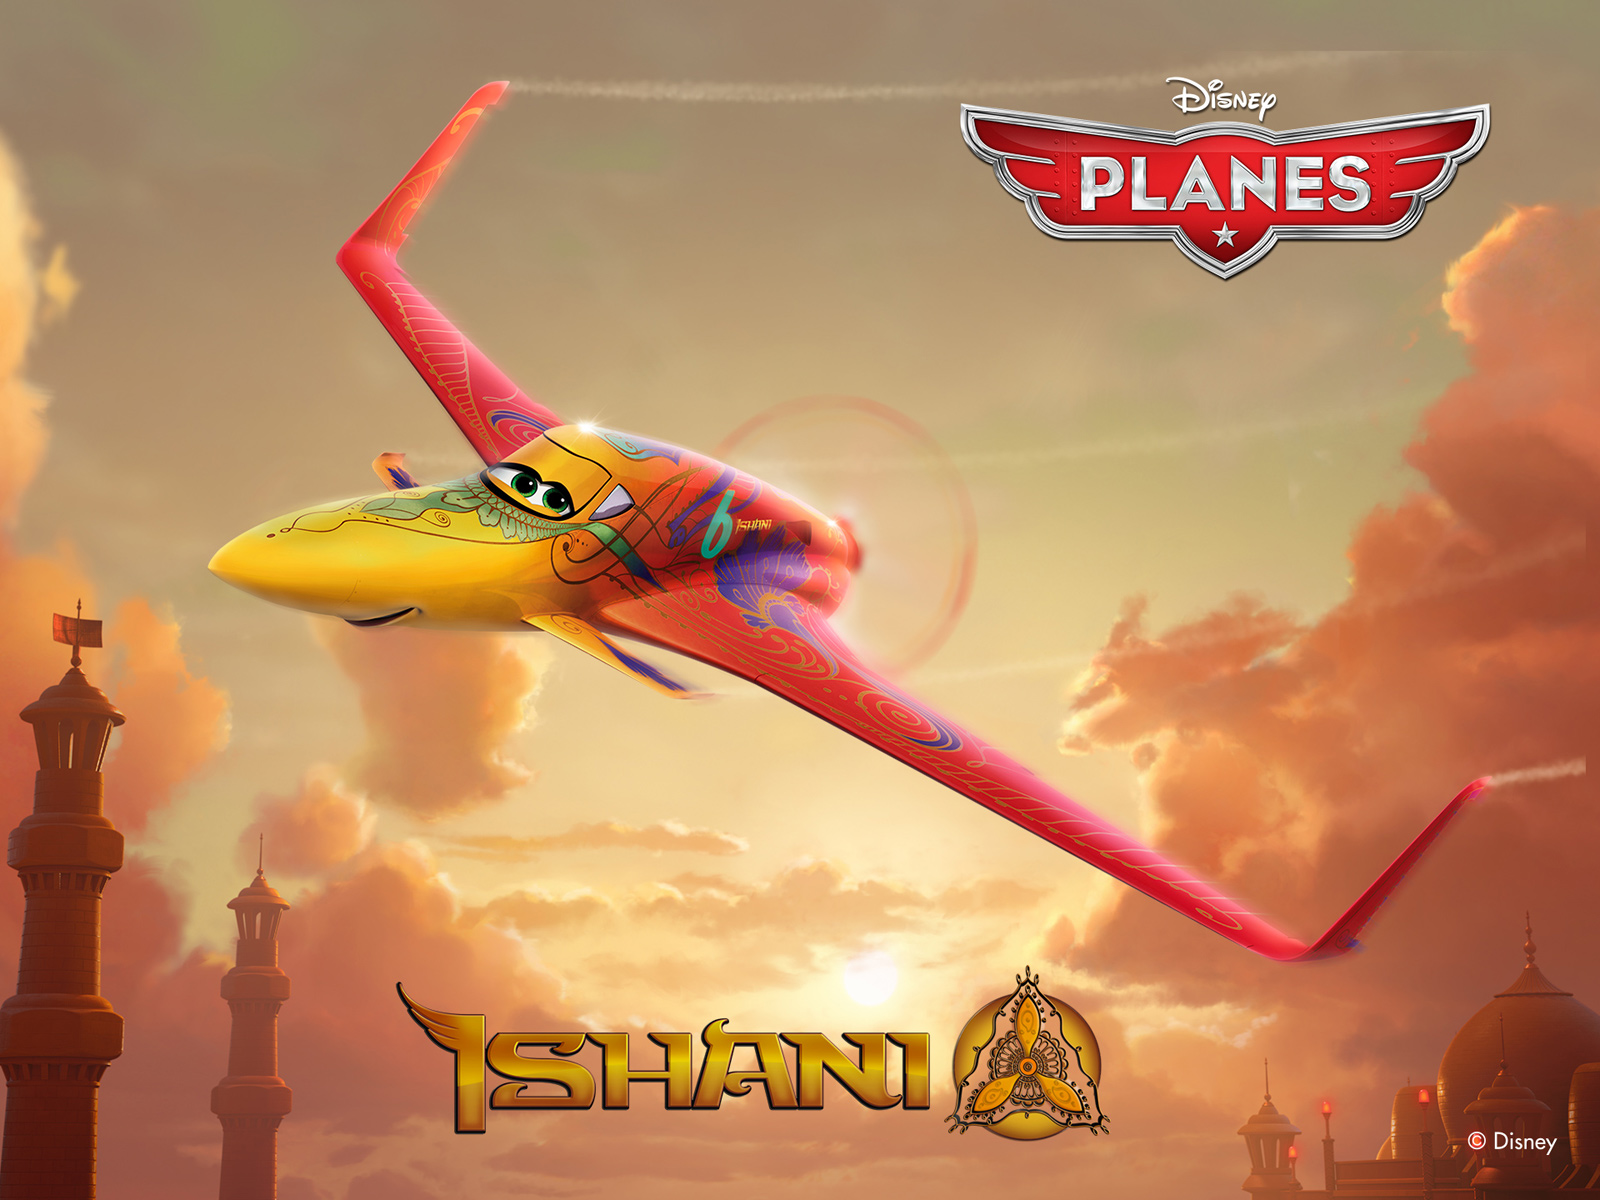 disney planes coloring pages skipper with Disneys Planes Priyankas Ishani Flies Over Taj Mahal To Ar Rahman Music on Simple Coloring Disney Pixar Planes Coloring Pages To Print At Skipper Coloring Pages as well  additionally Watch additionally 3912 Disneys Planes Sets further Disneys Planes Priyankas Ishani Flies Over Taj Mahal To Ar Rahman Music.